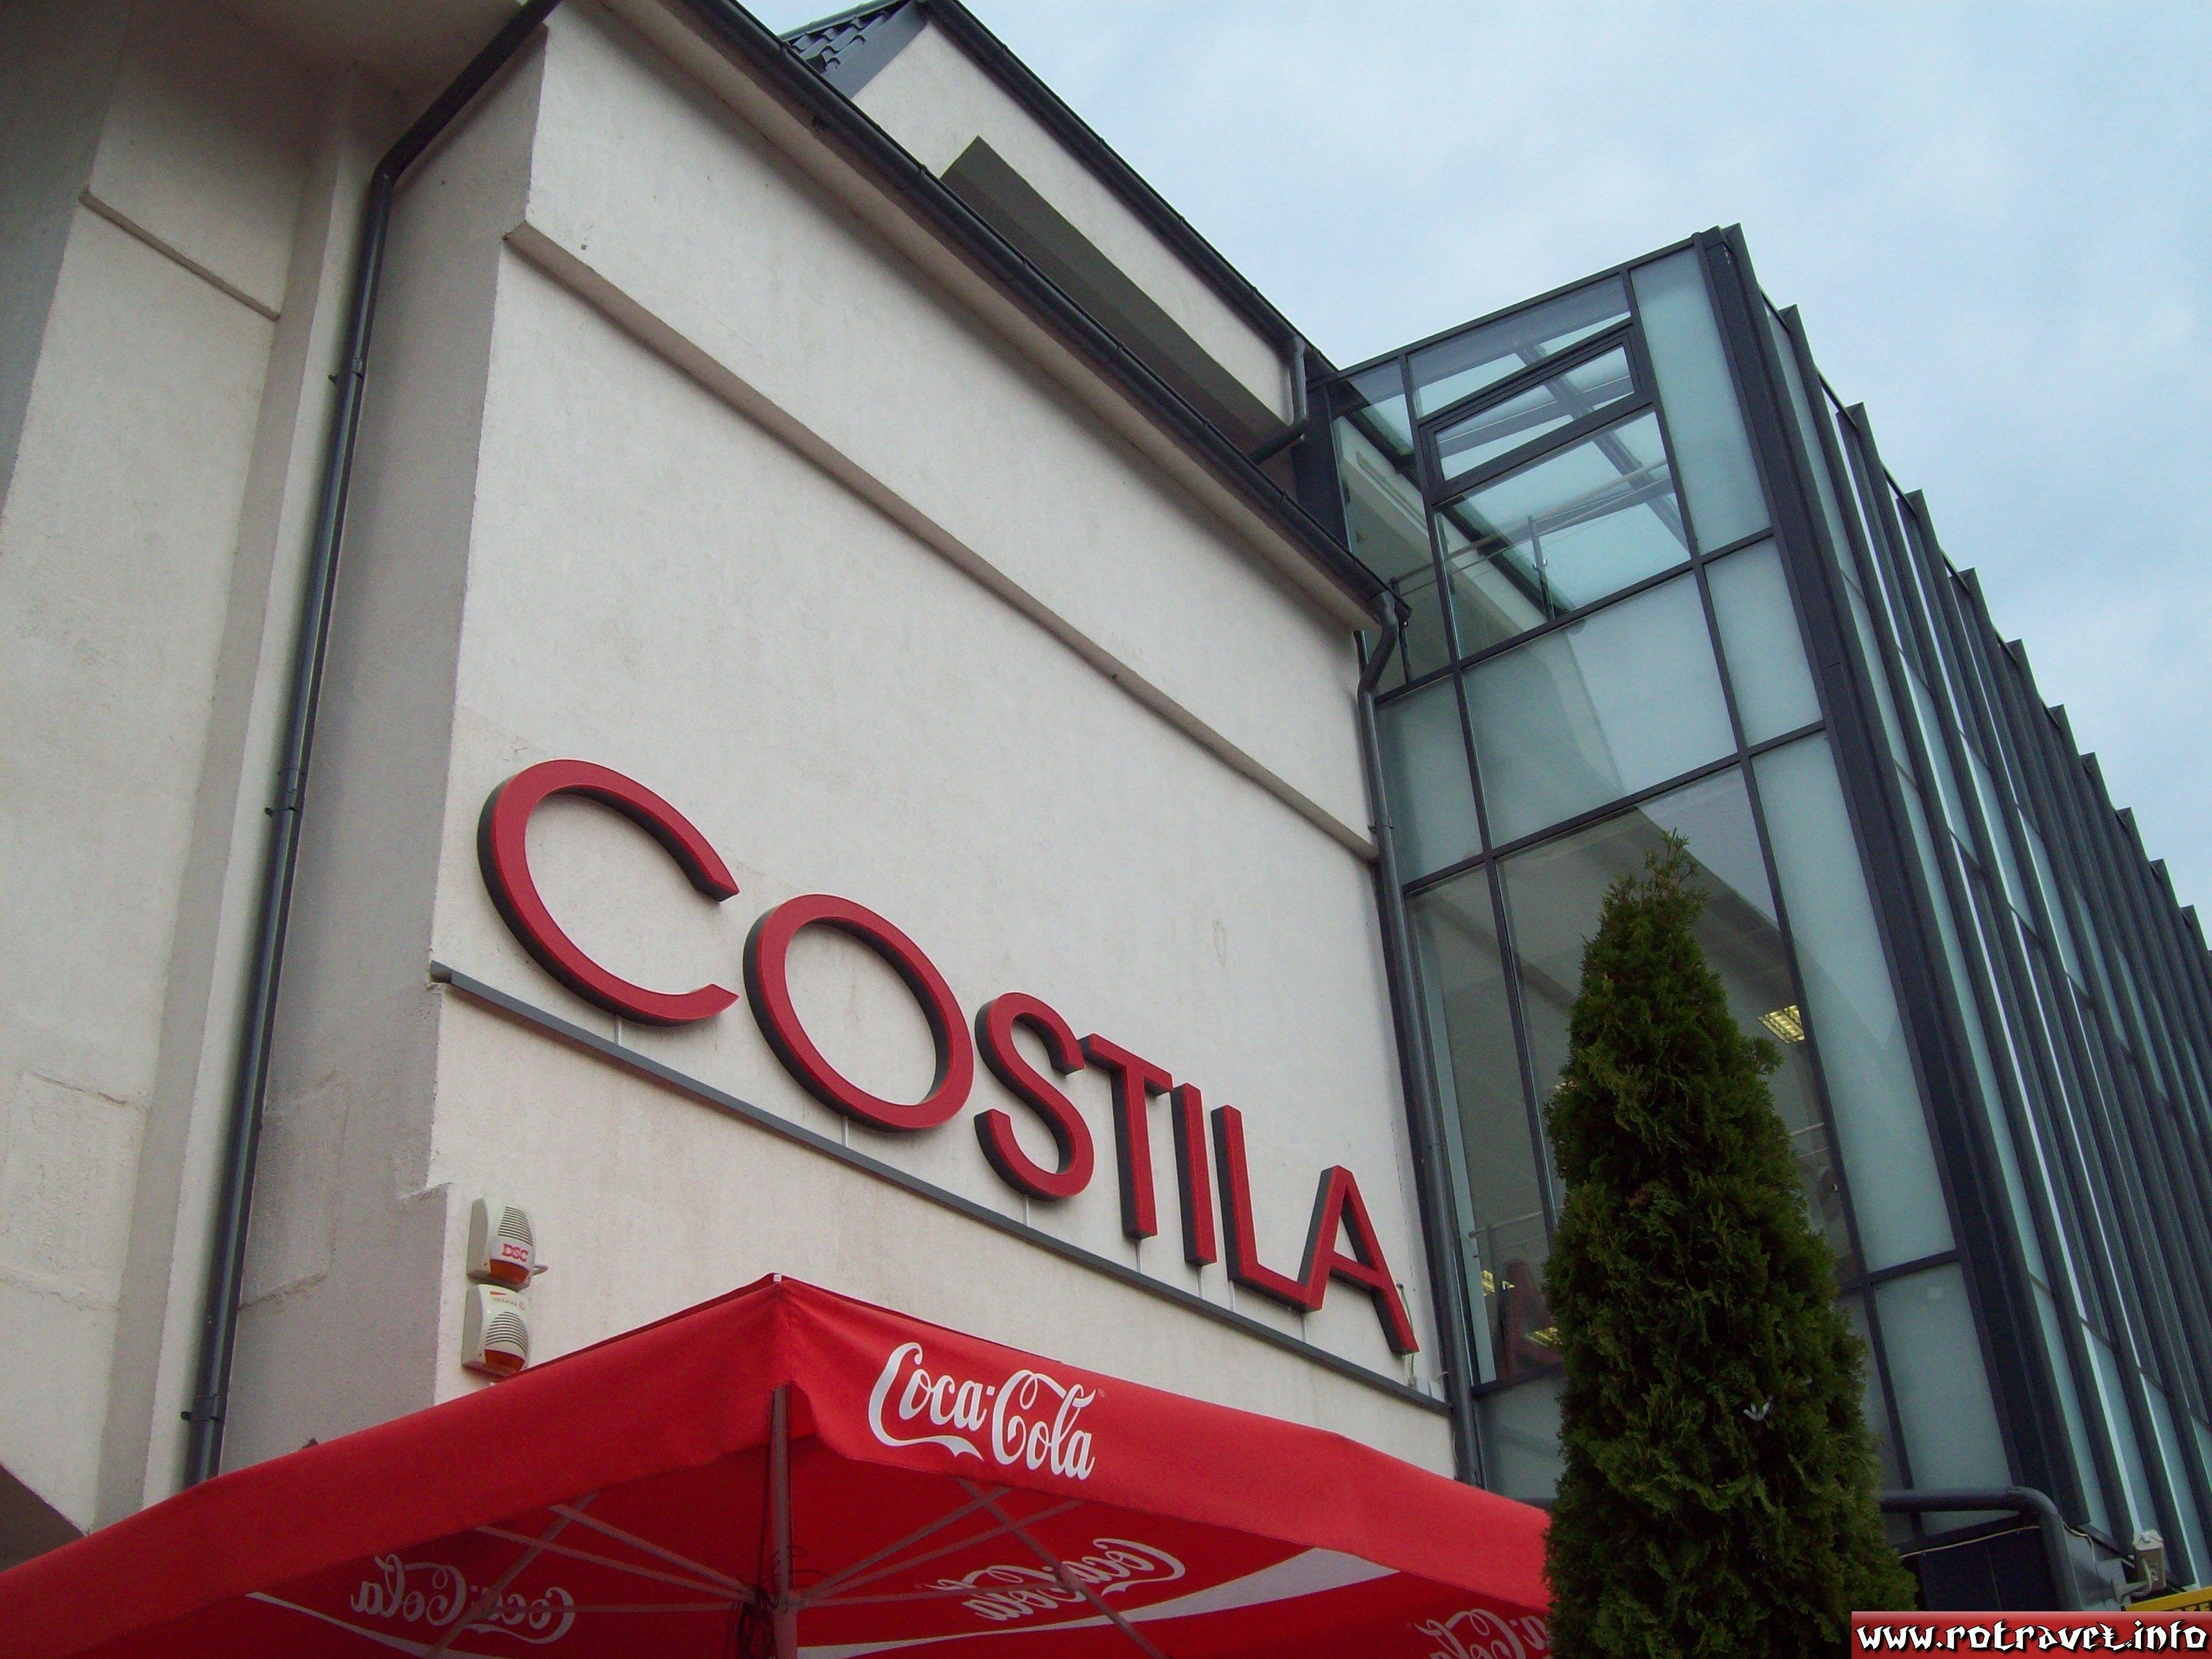 Costila-the new commercial center opened recently in Busteni